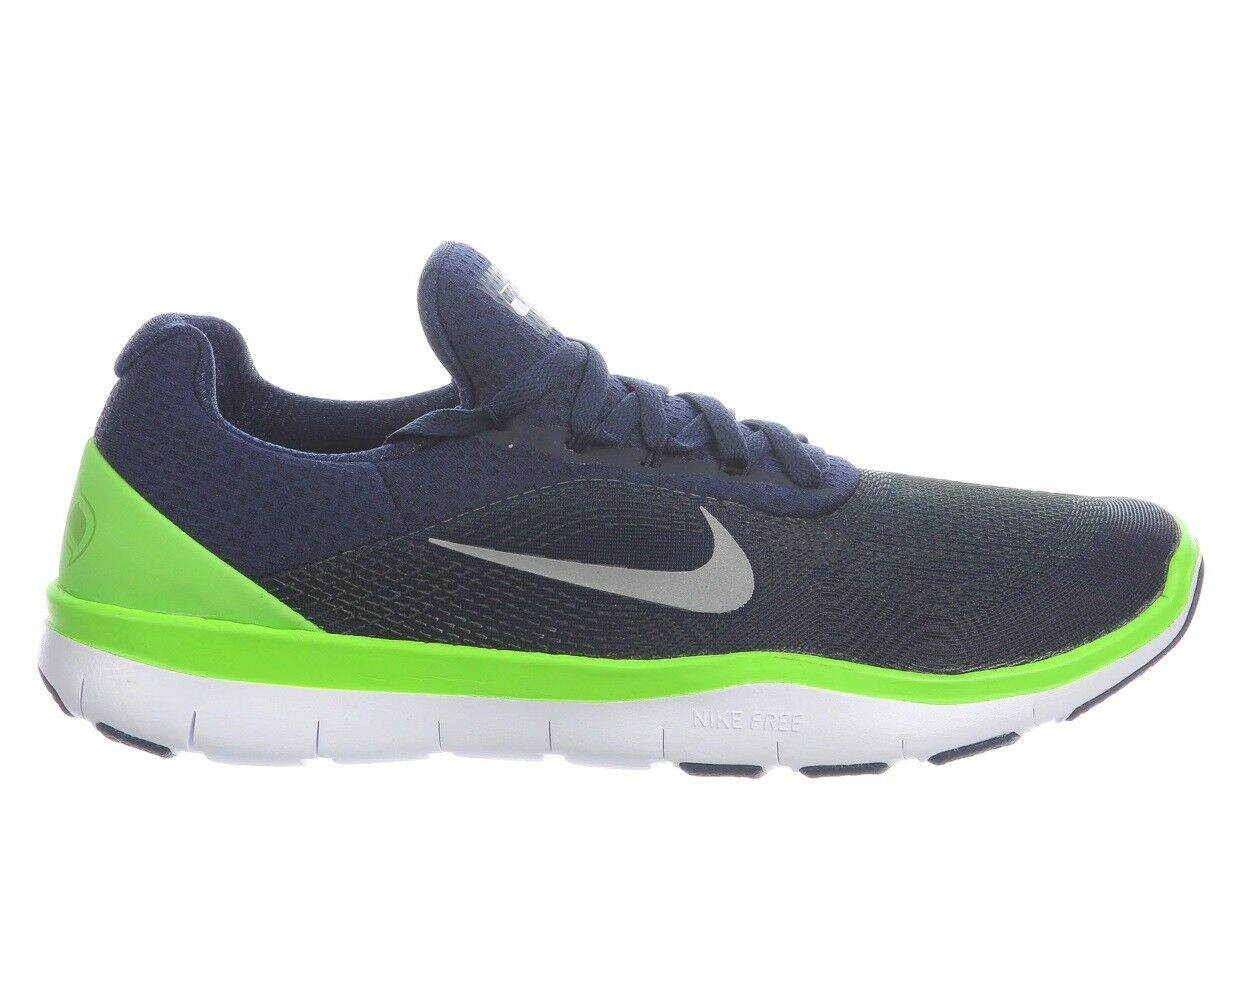 Nike Free Trainer V7 Seahawks Mens AA1948-400 Navy Green Training shoes Size 12